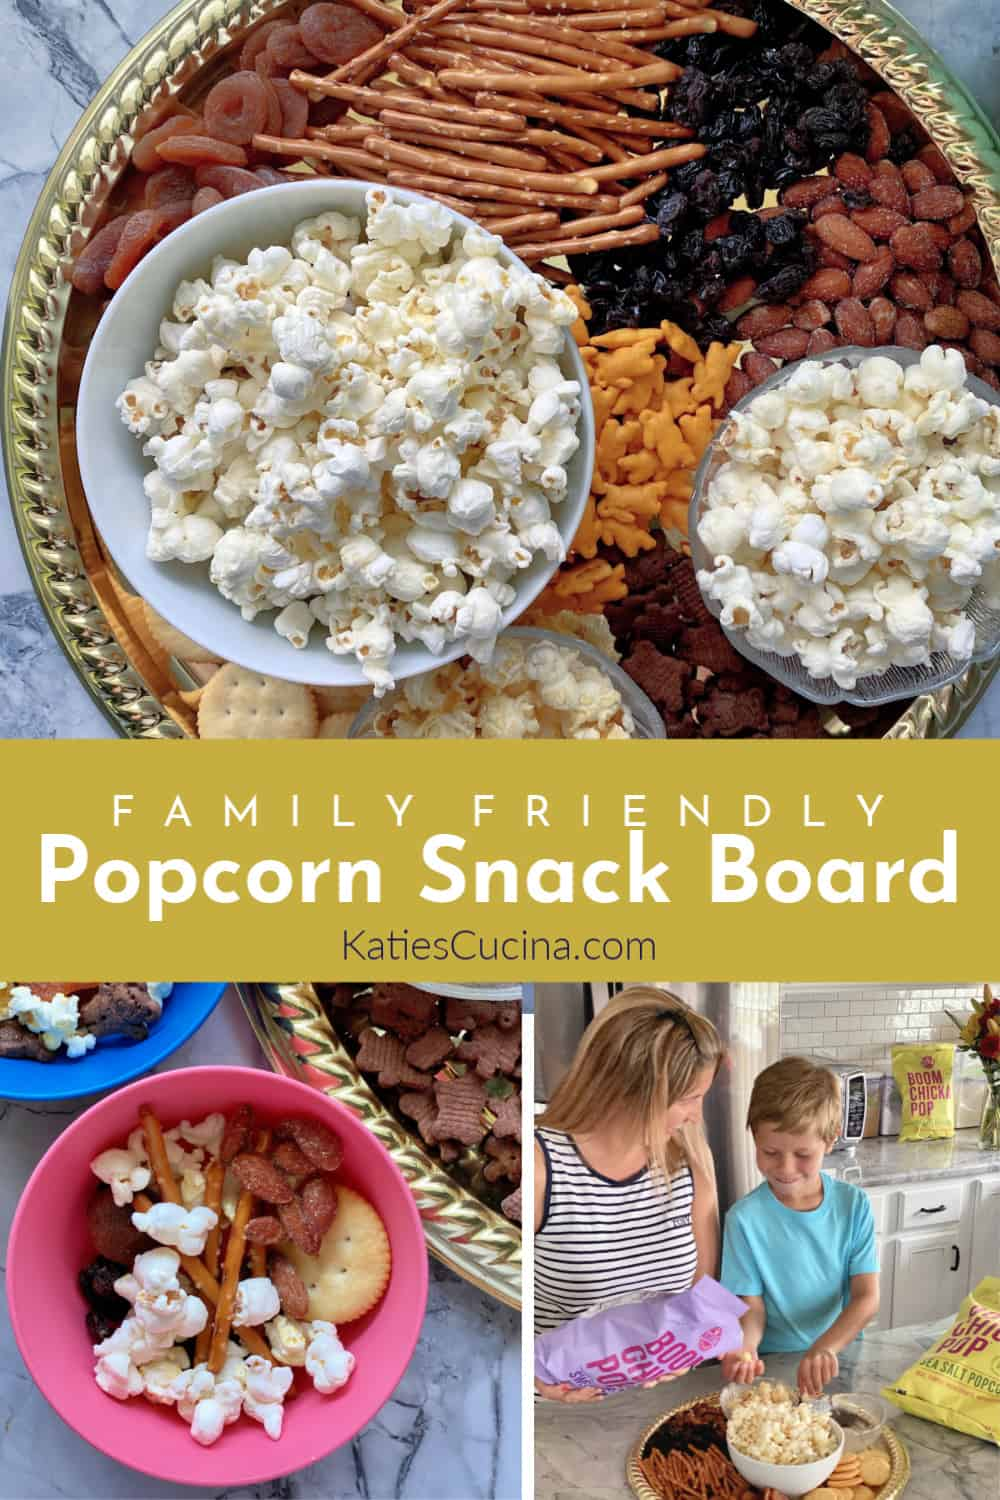 Family Friendly Popcorn Snack Board Photo Collage with Text